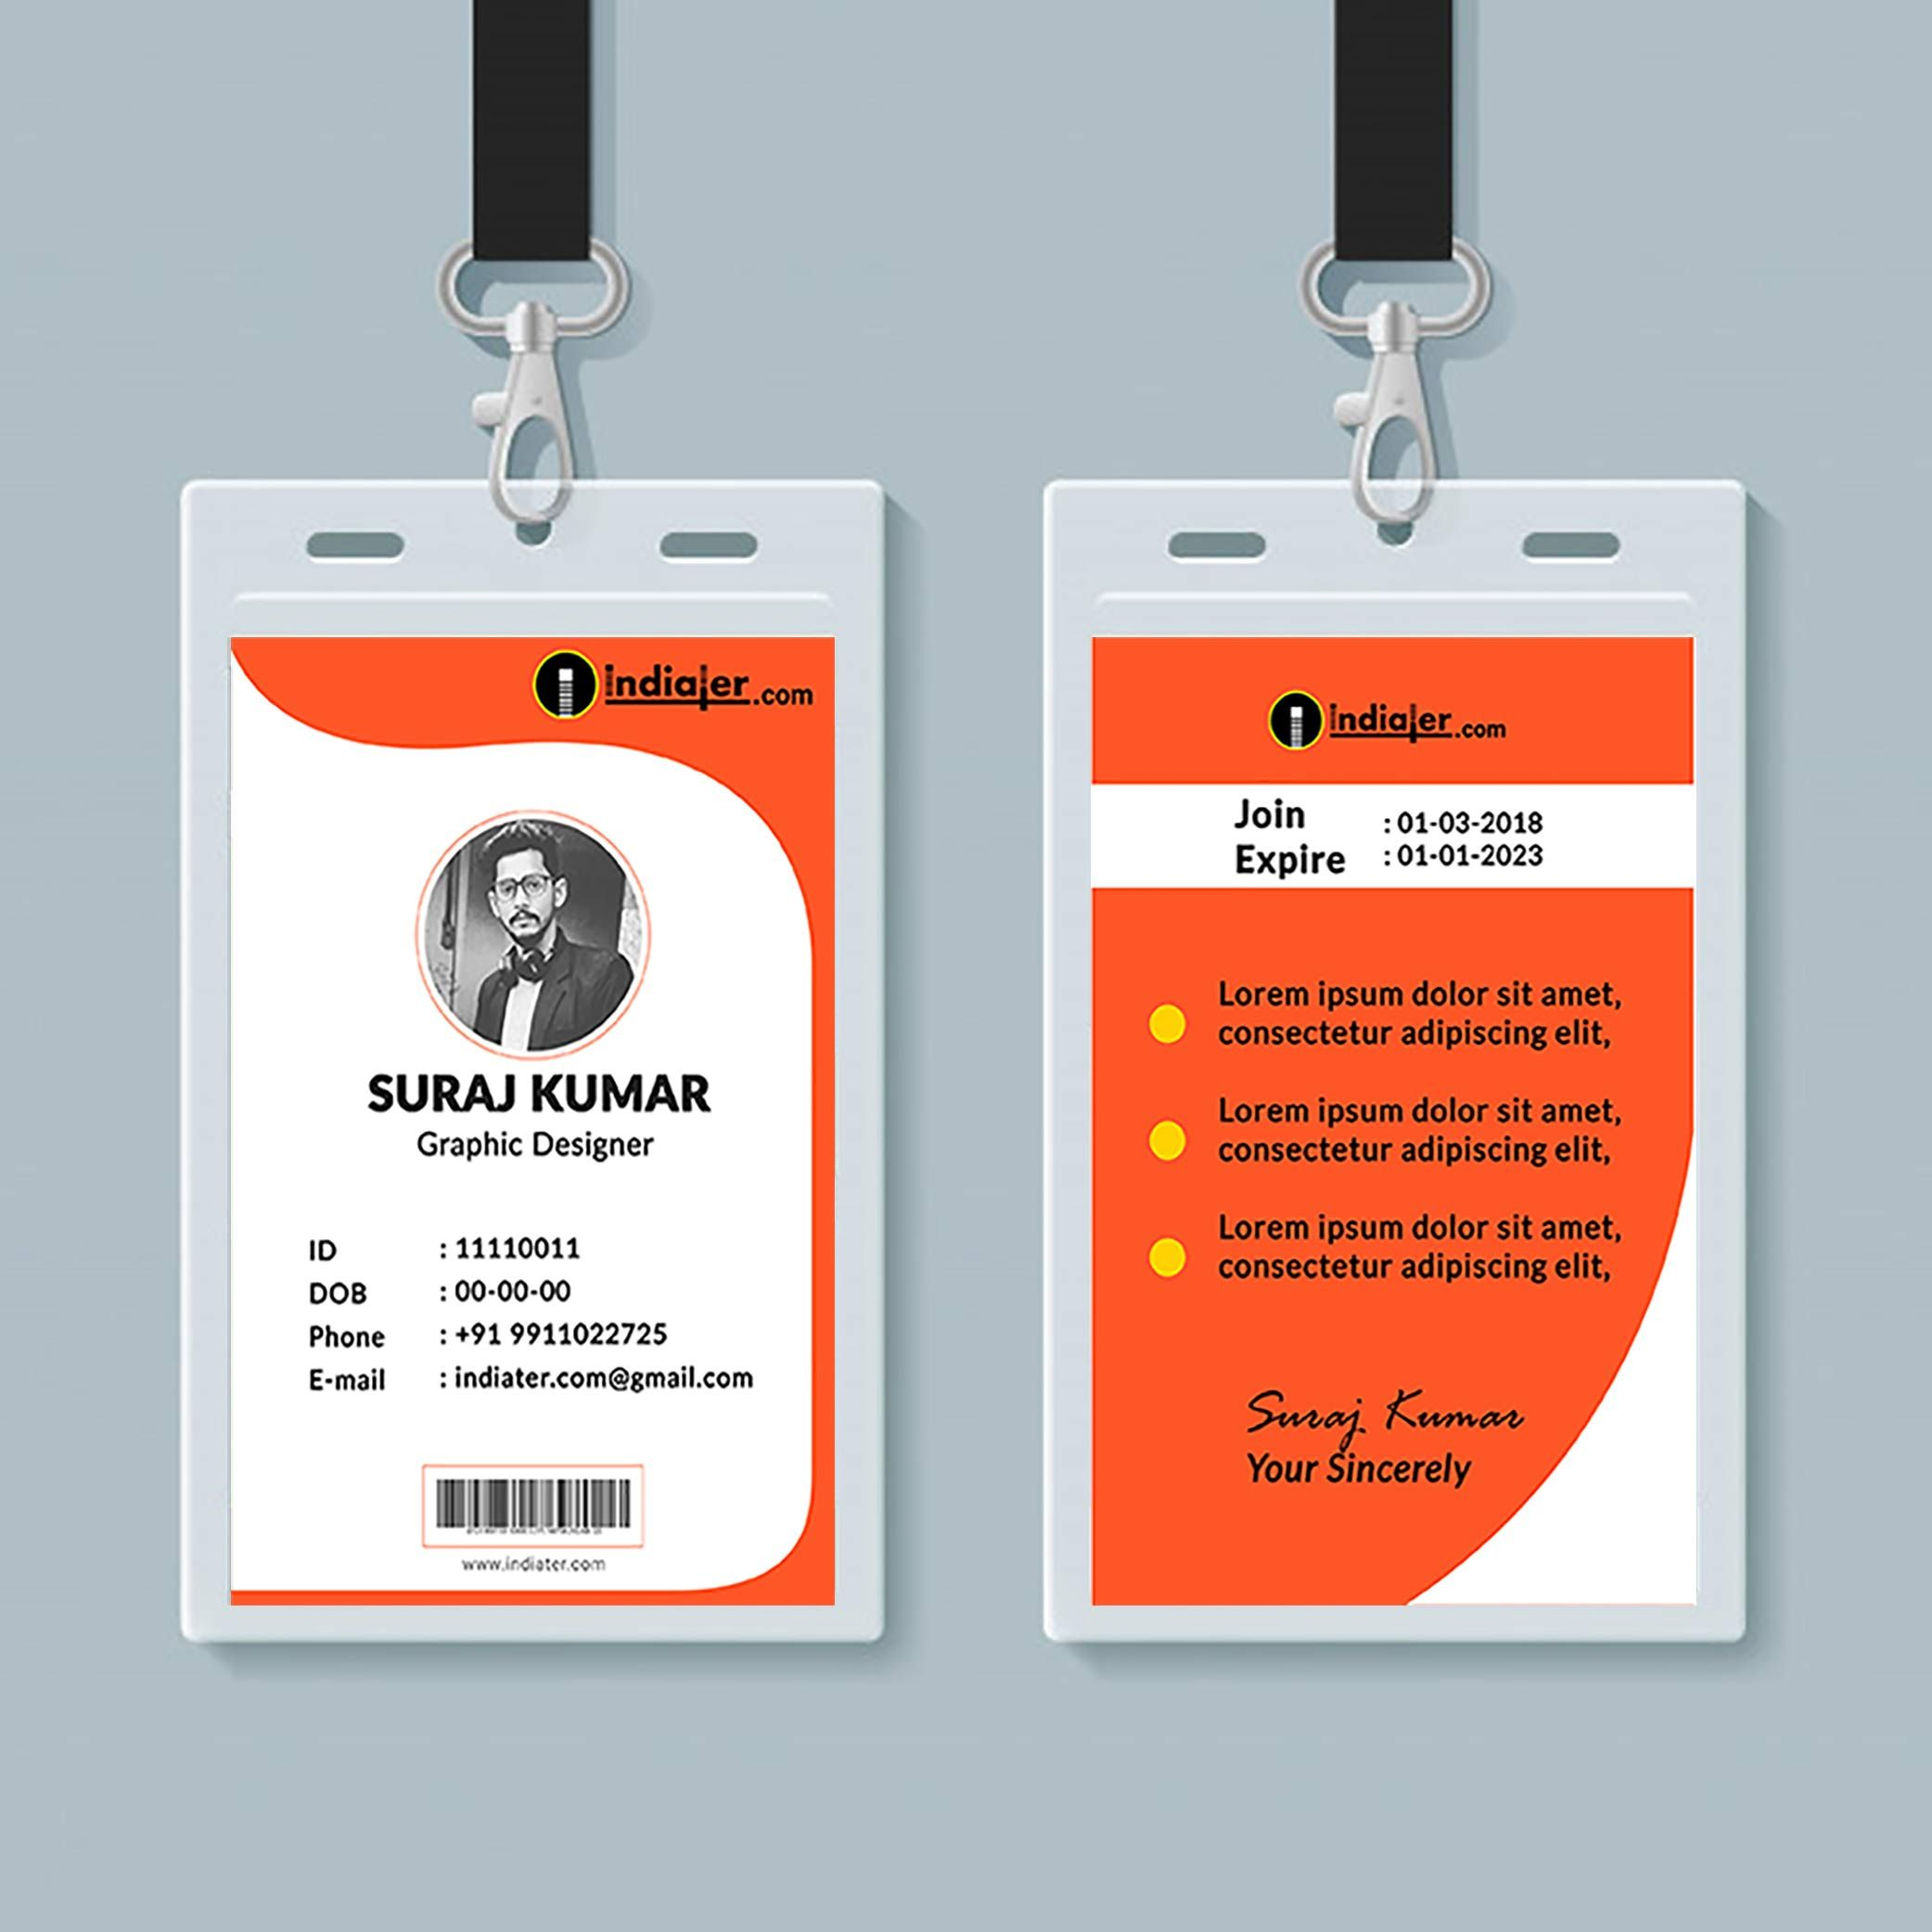 Multipurpose Corporate Office Id Card Free Psd Template For Template For Id Card Free Download Cumed Identity Card Design Id Card Template Psd Template Free